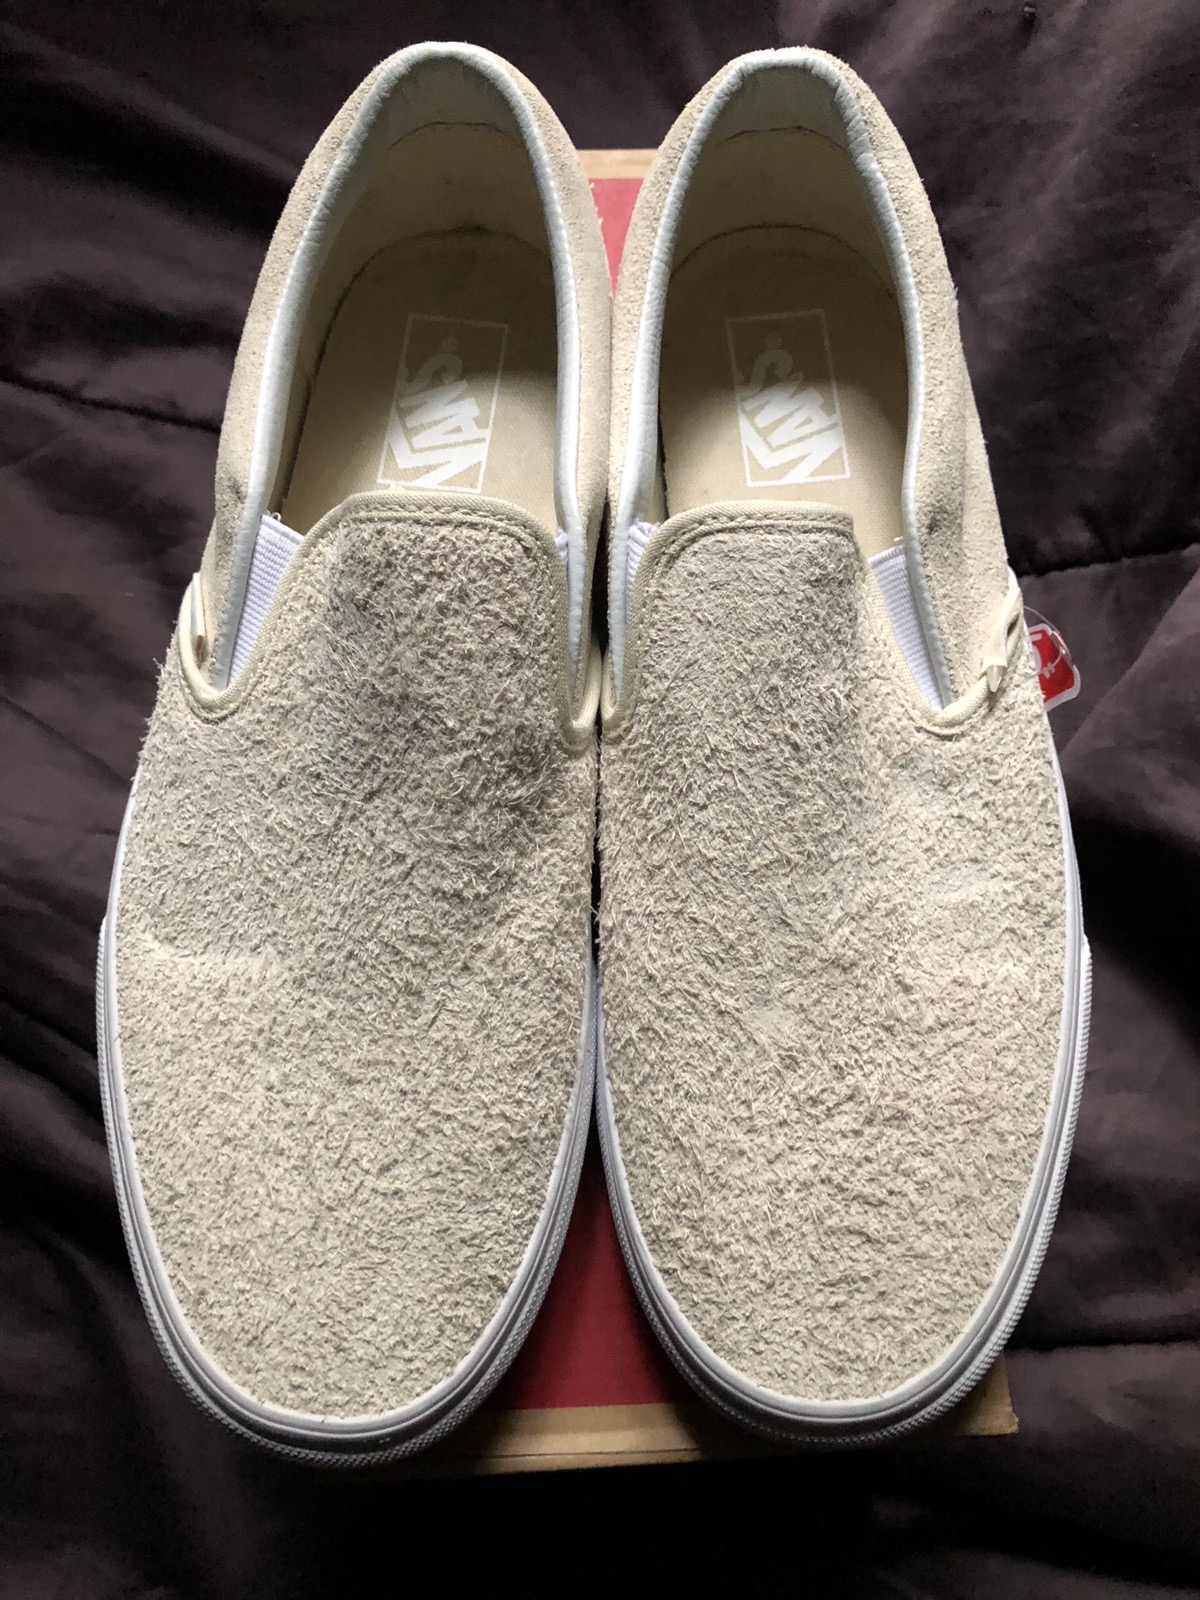 933b187346 Vans Brand New Vans Classic Slip-on Hairy Suede In Turtledove Off White 9.5